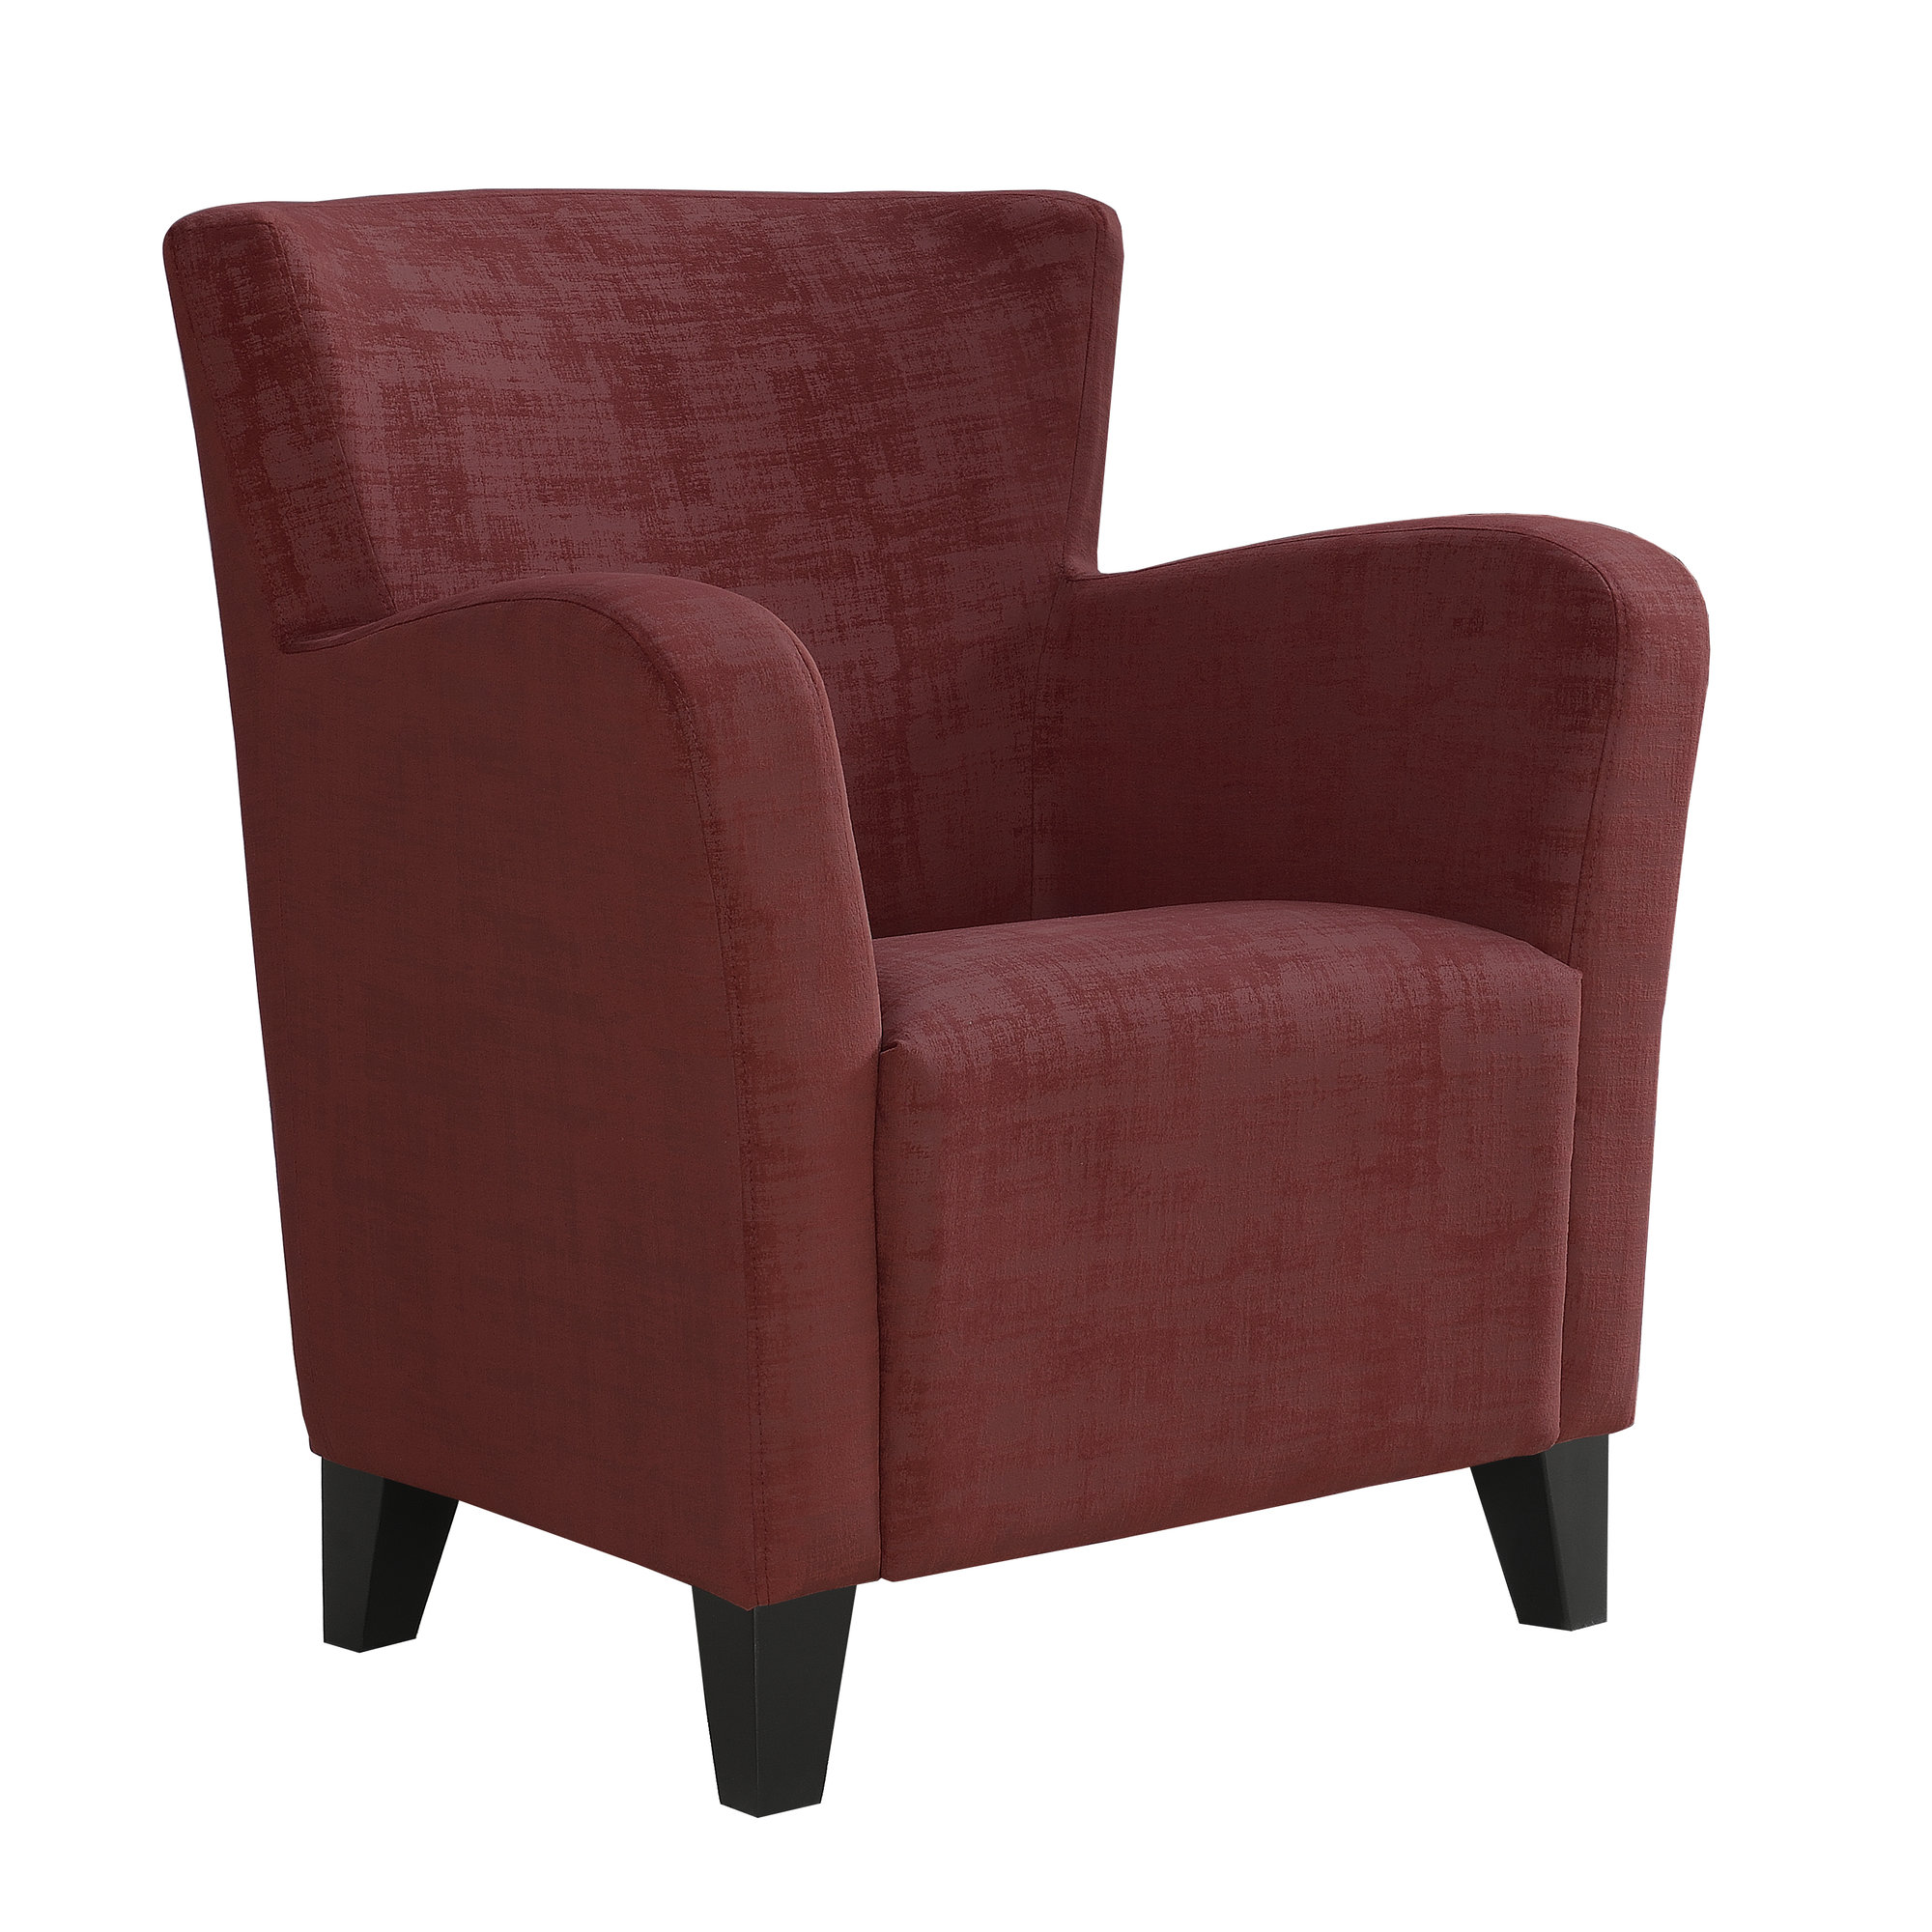 ACCENT CHAIR - RED BRUSHED VELVET FABRIC